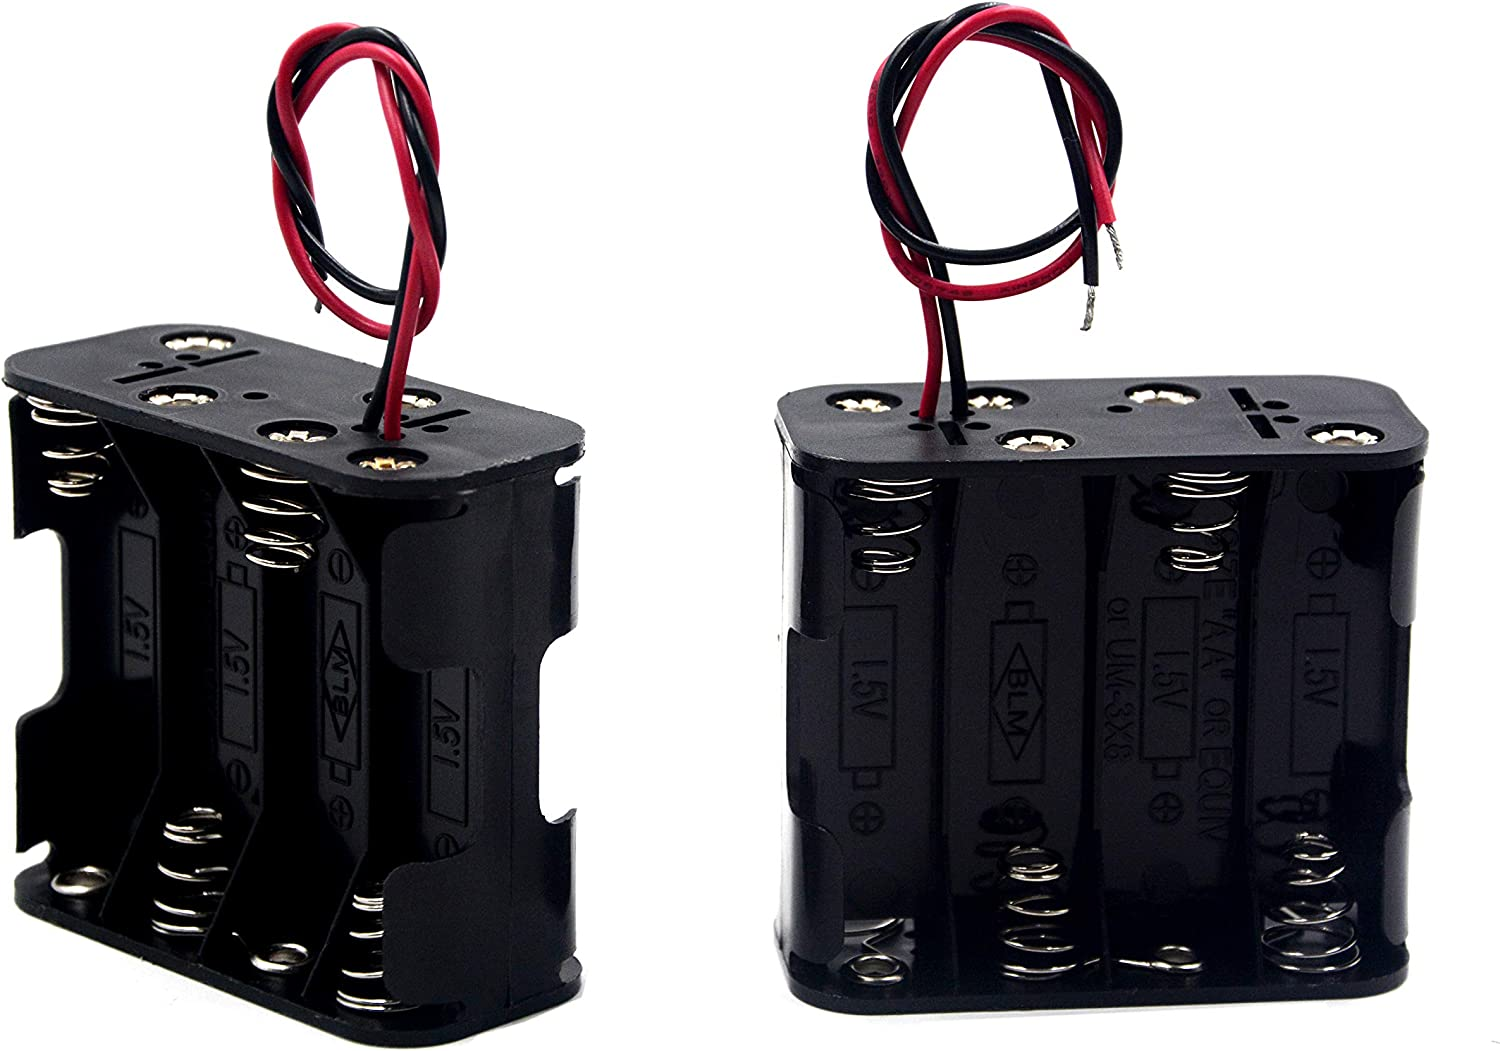 Amazon Com Lampvpath Pack Of 2 8 Aa Battery Holder 12v Aa Battery Holder 8 Aa Battery Holder With Leads Double Layers Battery Holder Each Layer Loads Four Aa Batteries Home Audio Theater